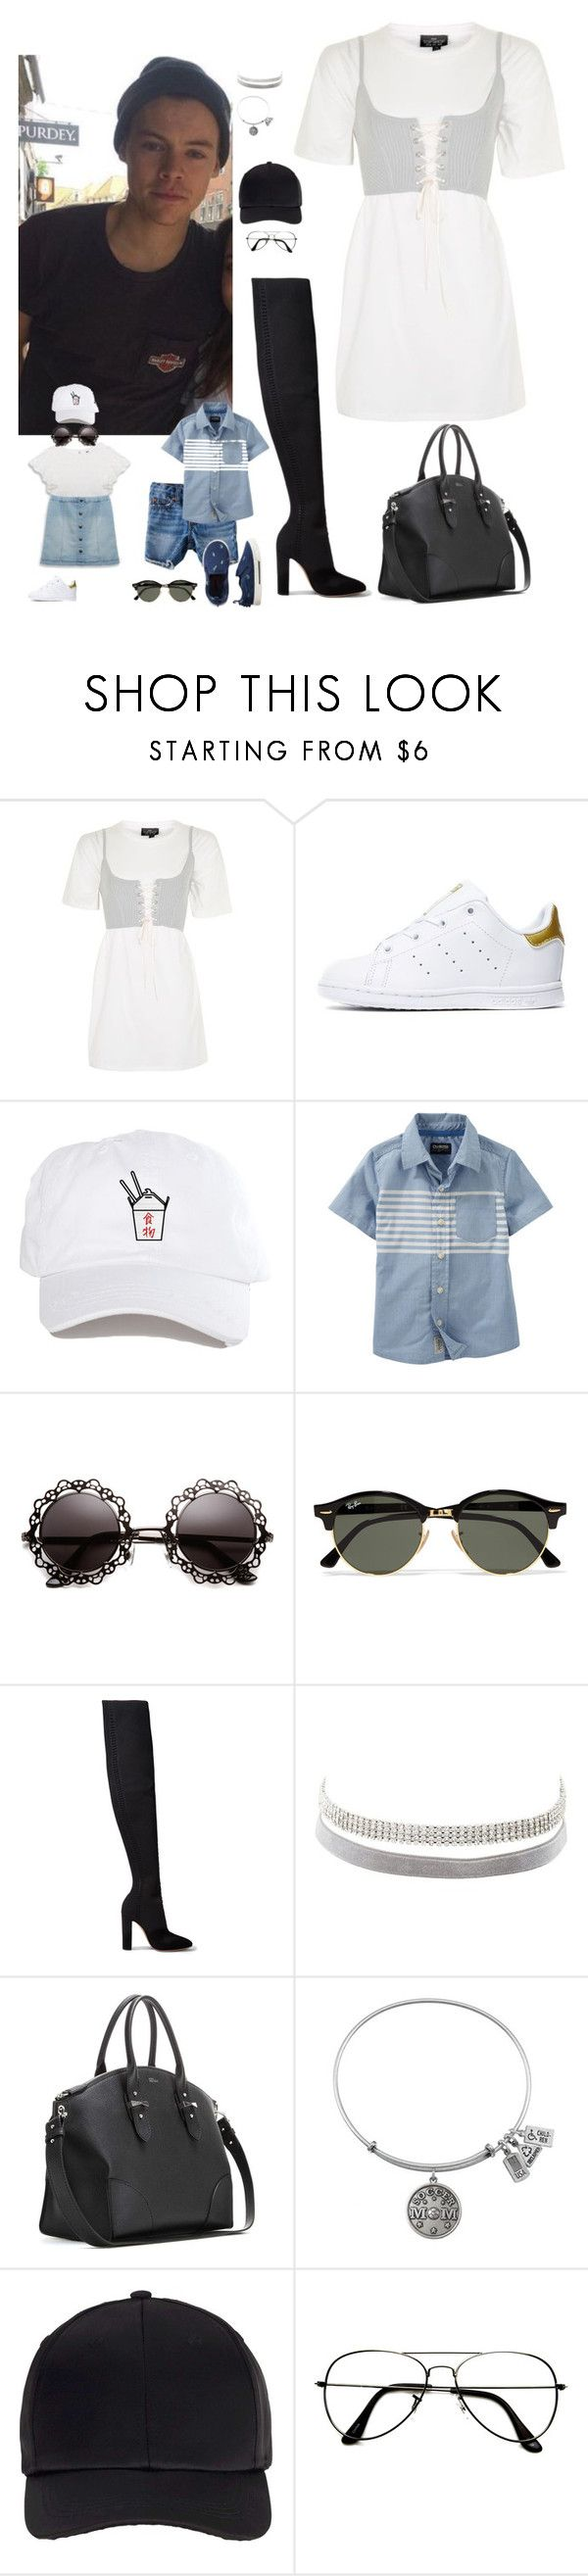 """Sin título #1275"" by wiki0622 ❤ liked on Polyvore featuring Topshop, adidas Originals, Carter's, Ray-Ban, Gianvito Rossi, Charlotte Russe, Alexander McQueen, Miss Selfridge and ZeroUV"